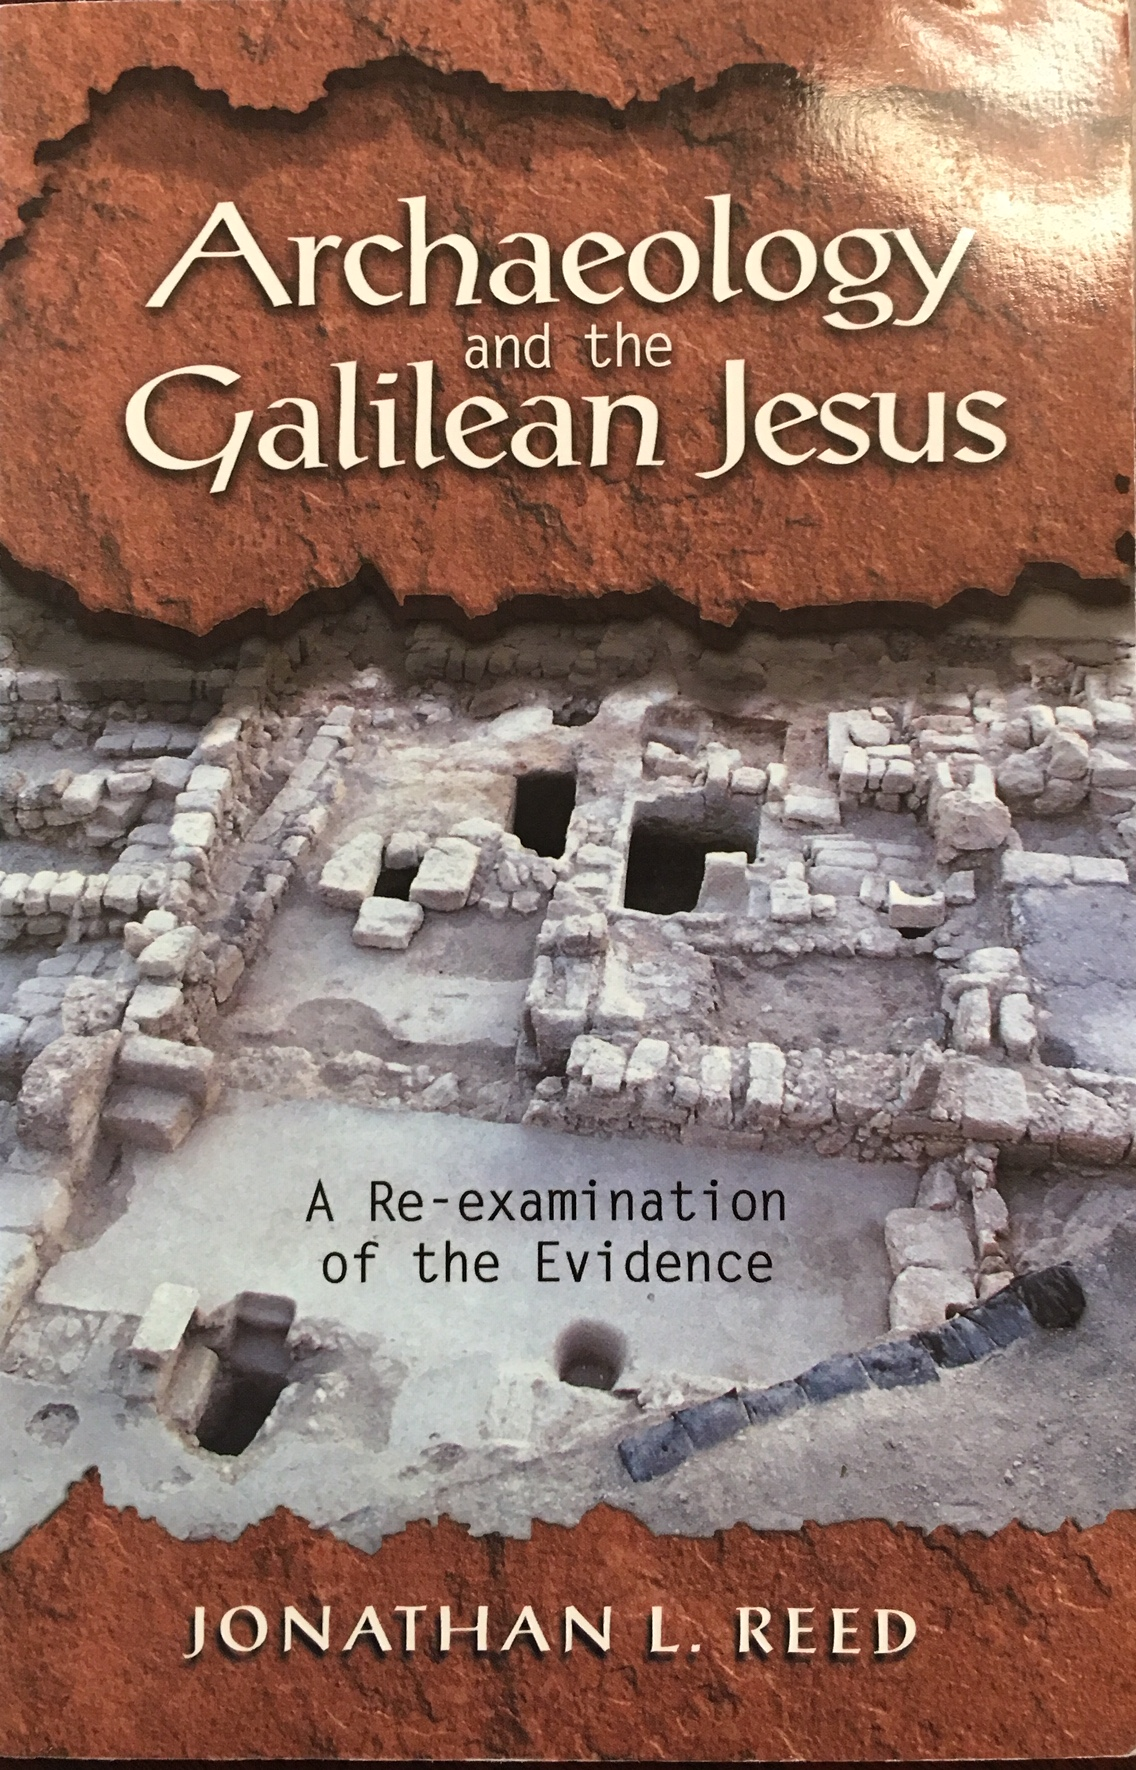 Image for Archaeology and the Galilean Jesus: A Re-examination of the Evidence